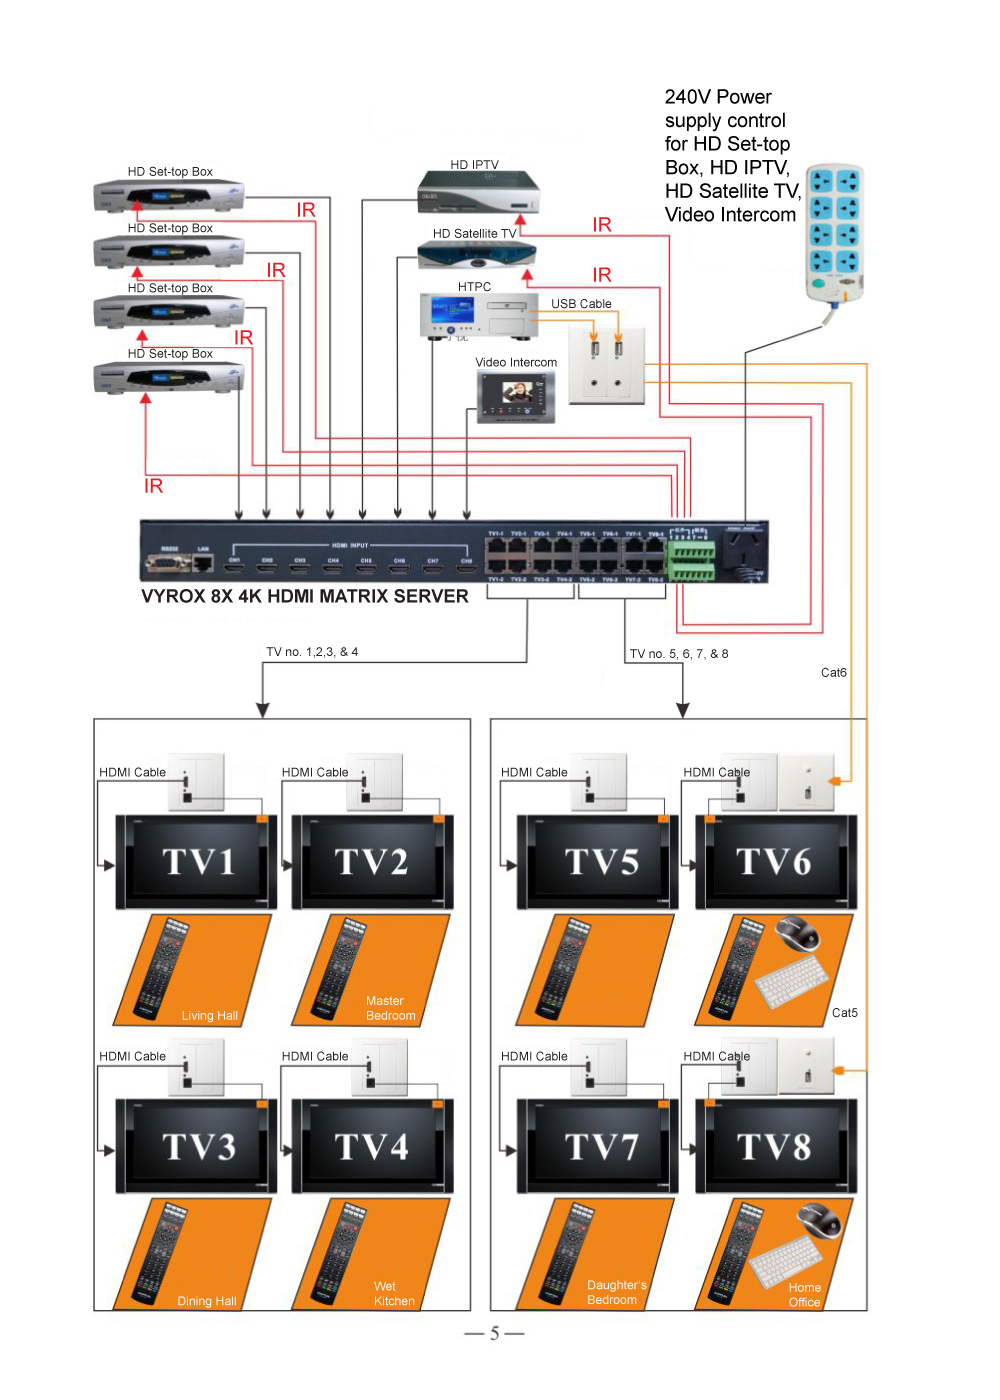 medium resolution of the system architecture reduced wiring and cabling needed hdmi matrix system allows every user to switch to watch from any video source freely using remote